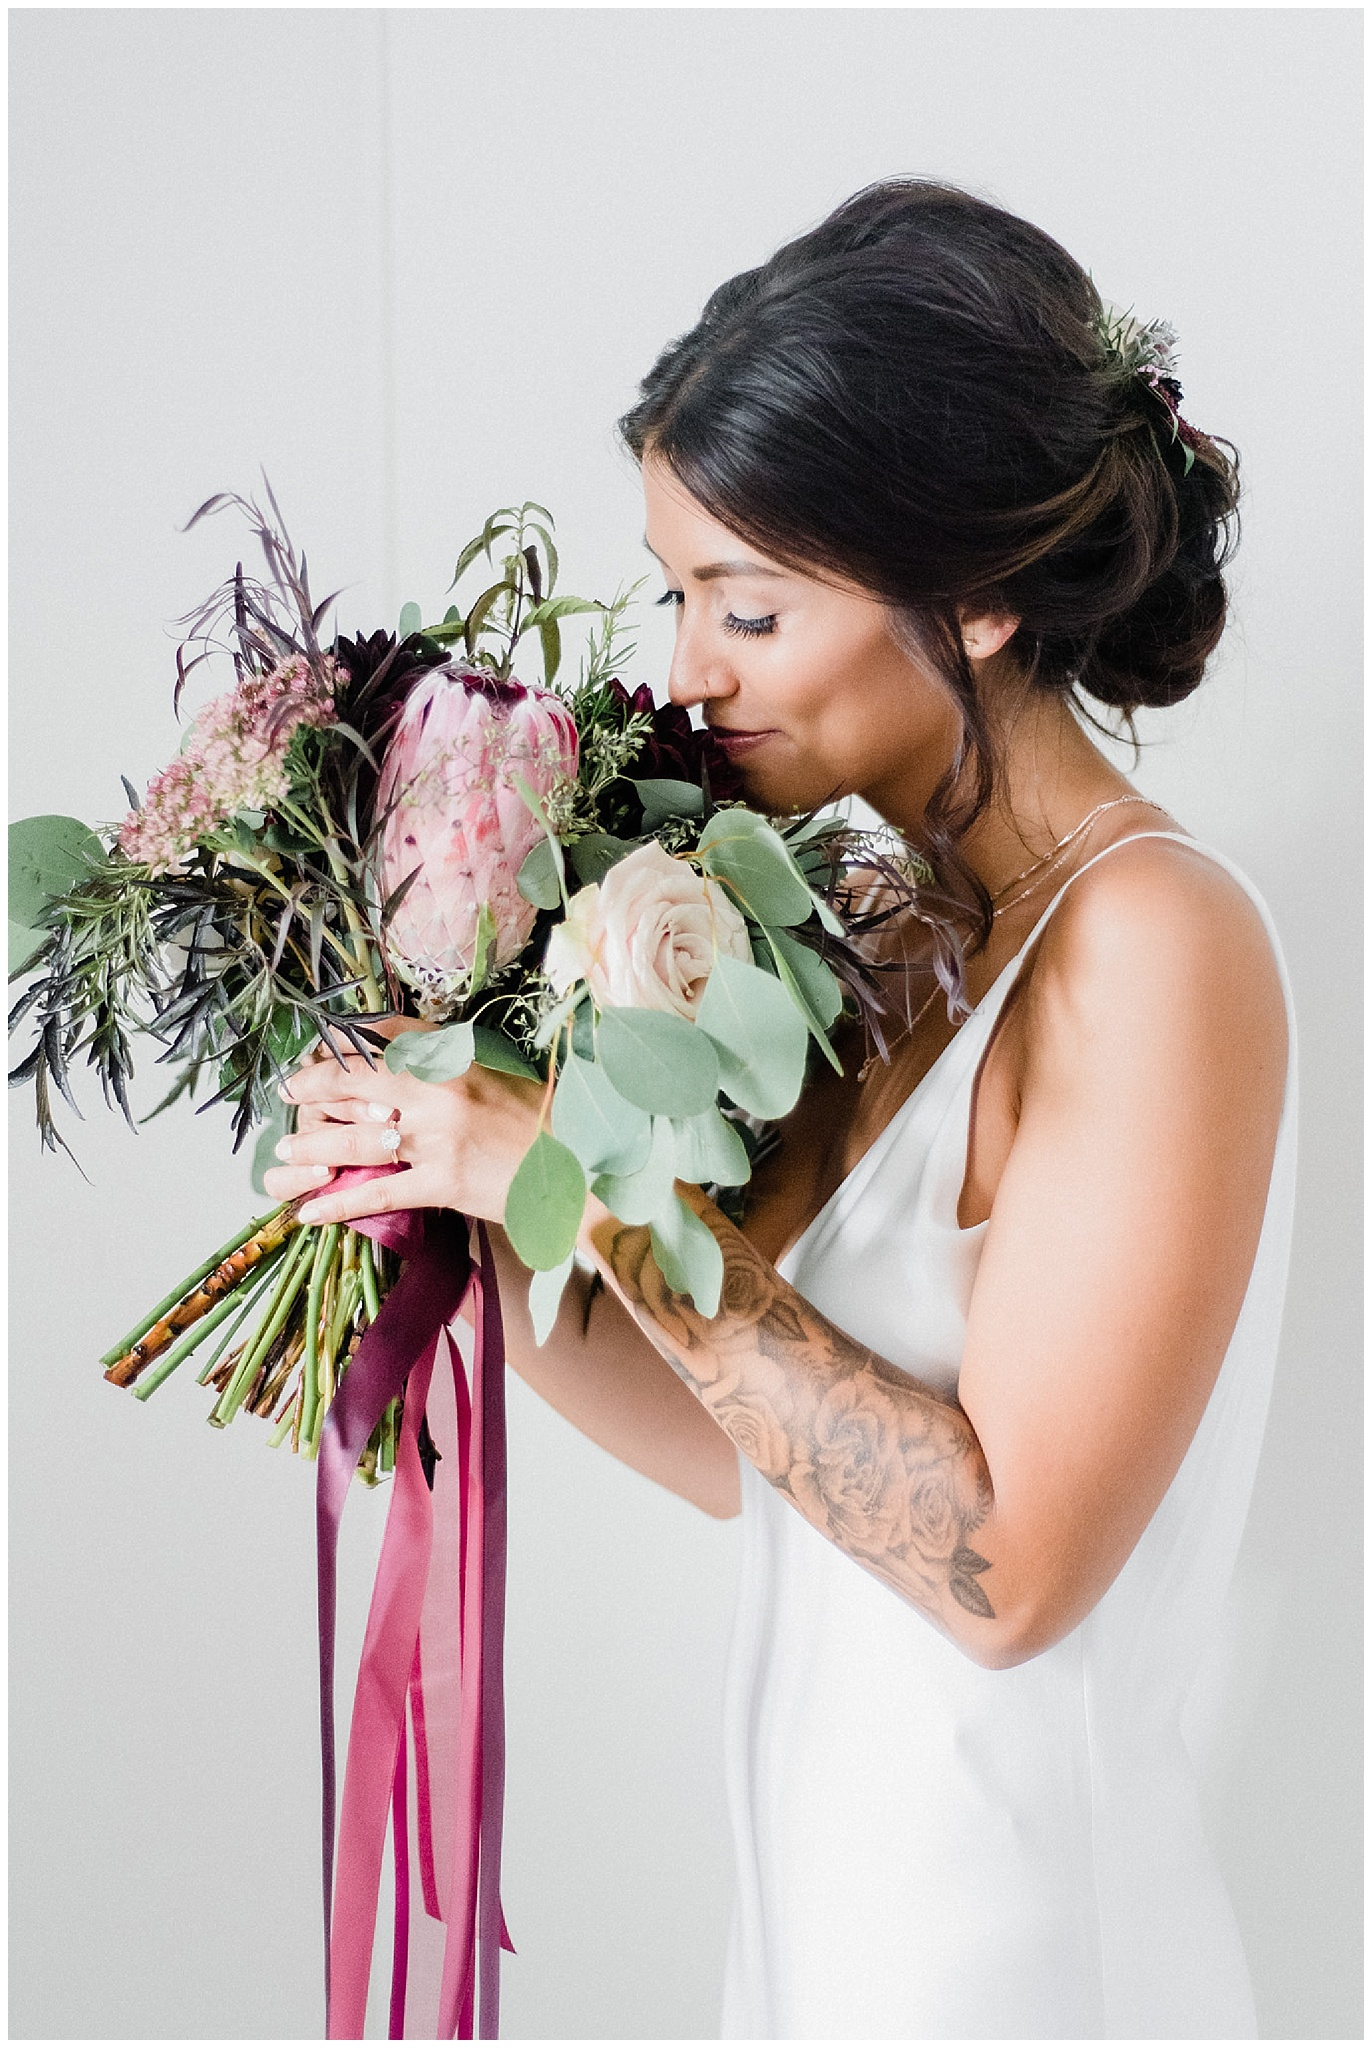 Boho bouquet with protea and herbs by Mint and Magnolia Floral Design, photographed by Jenn Kavanagh Photography